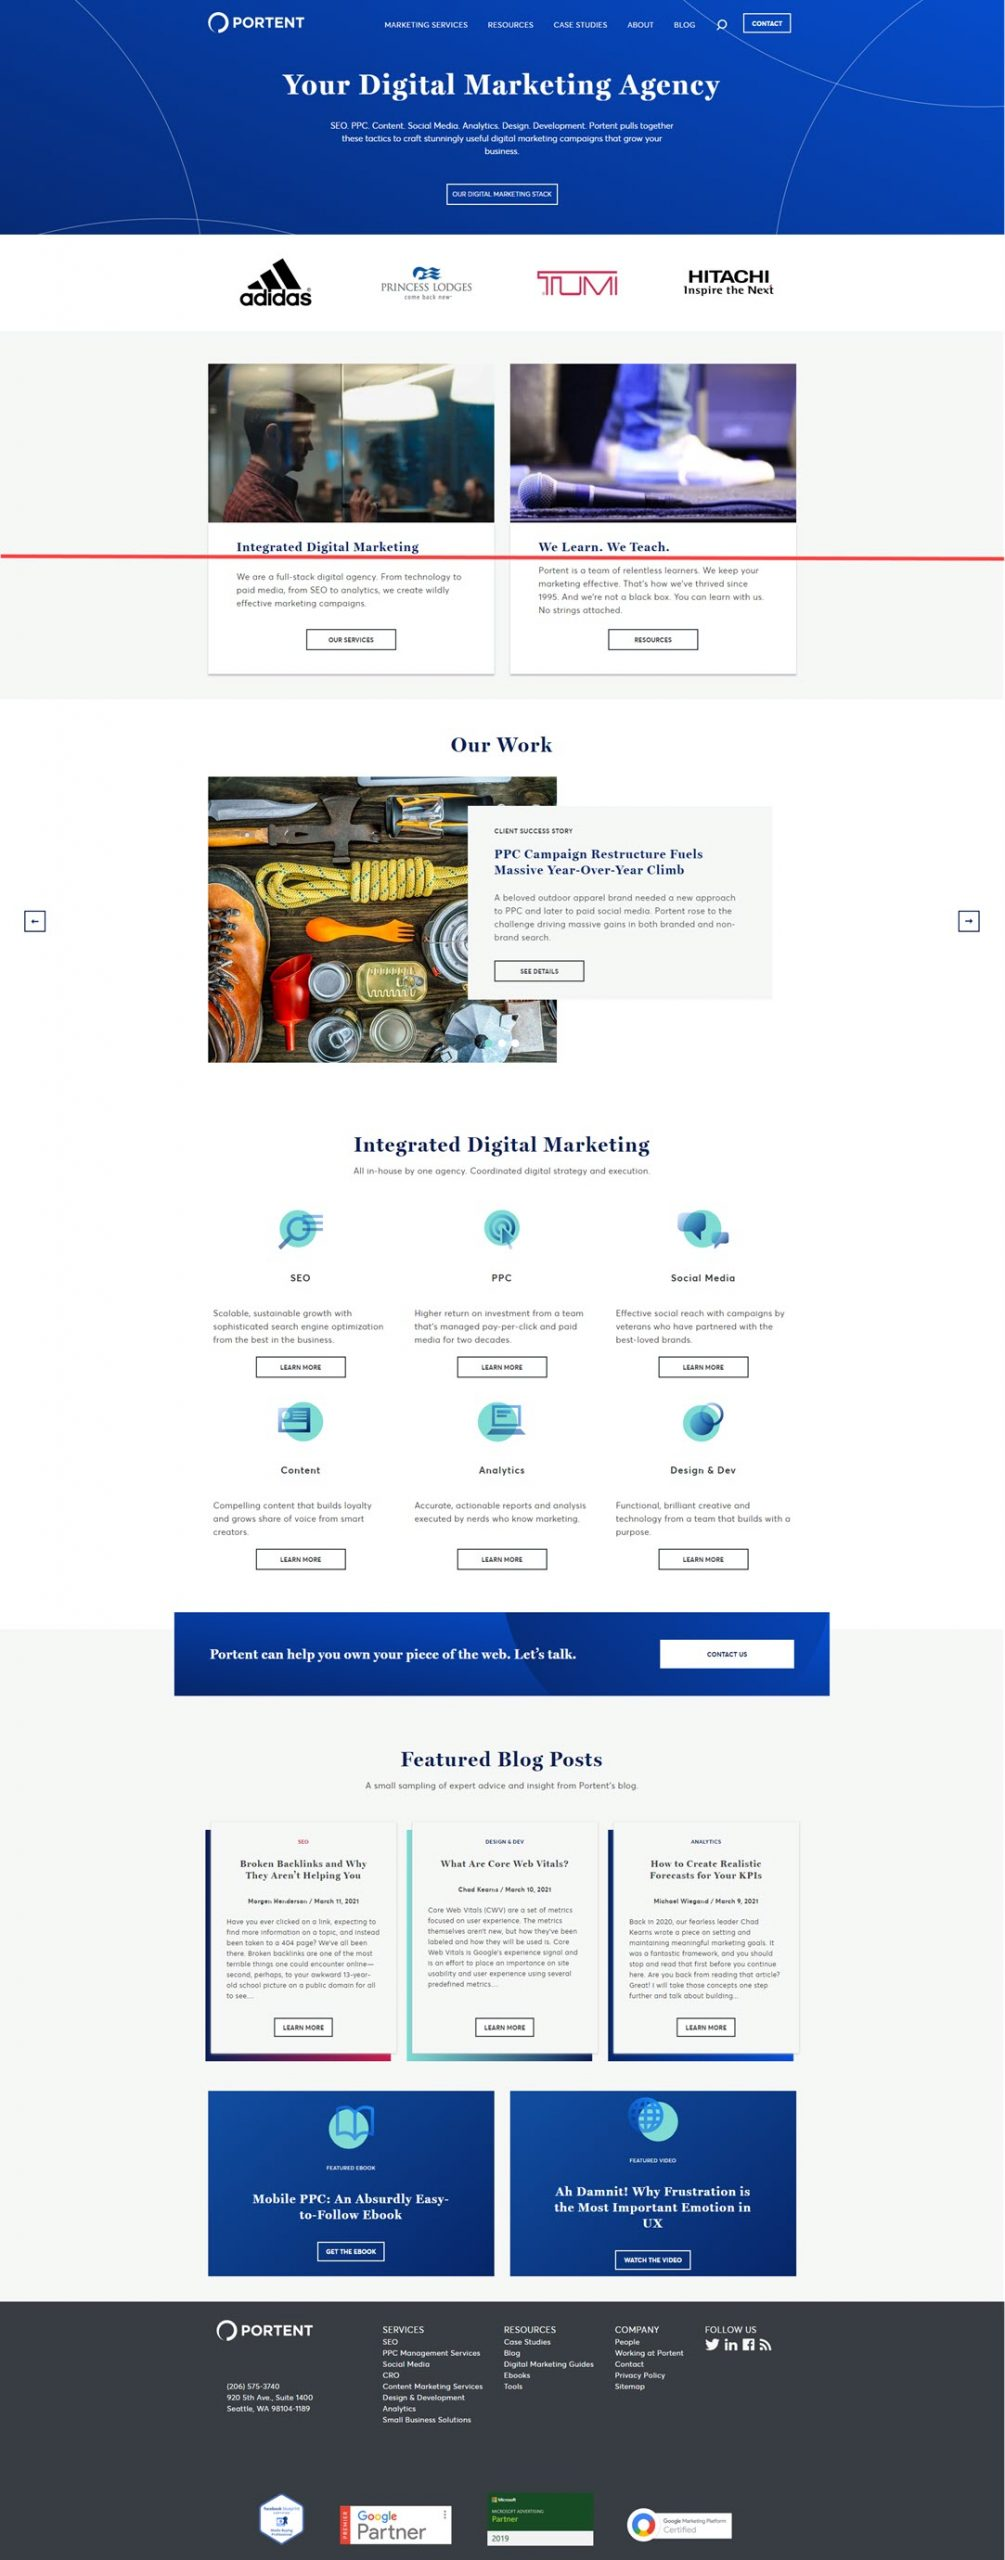 Portent.com above the fold content example